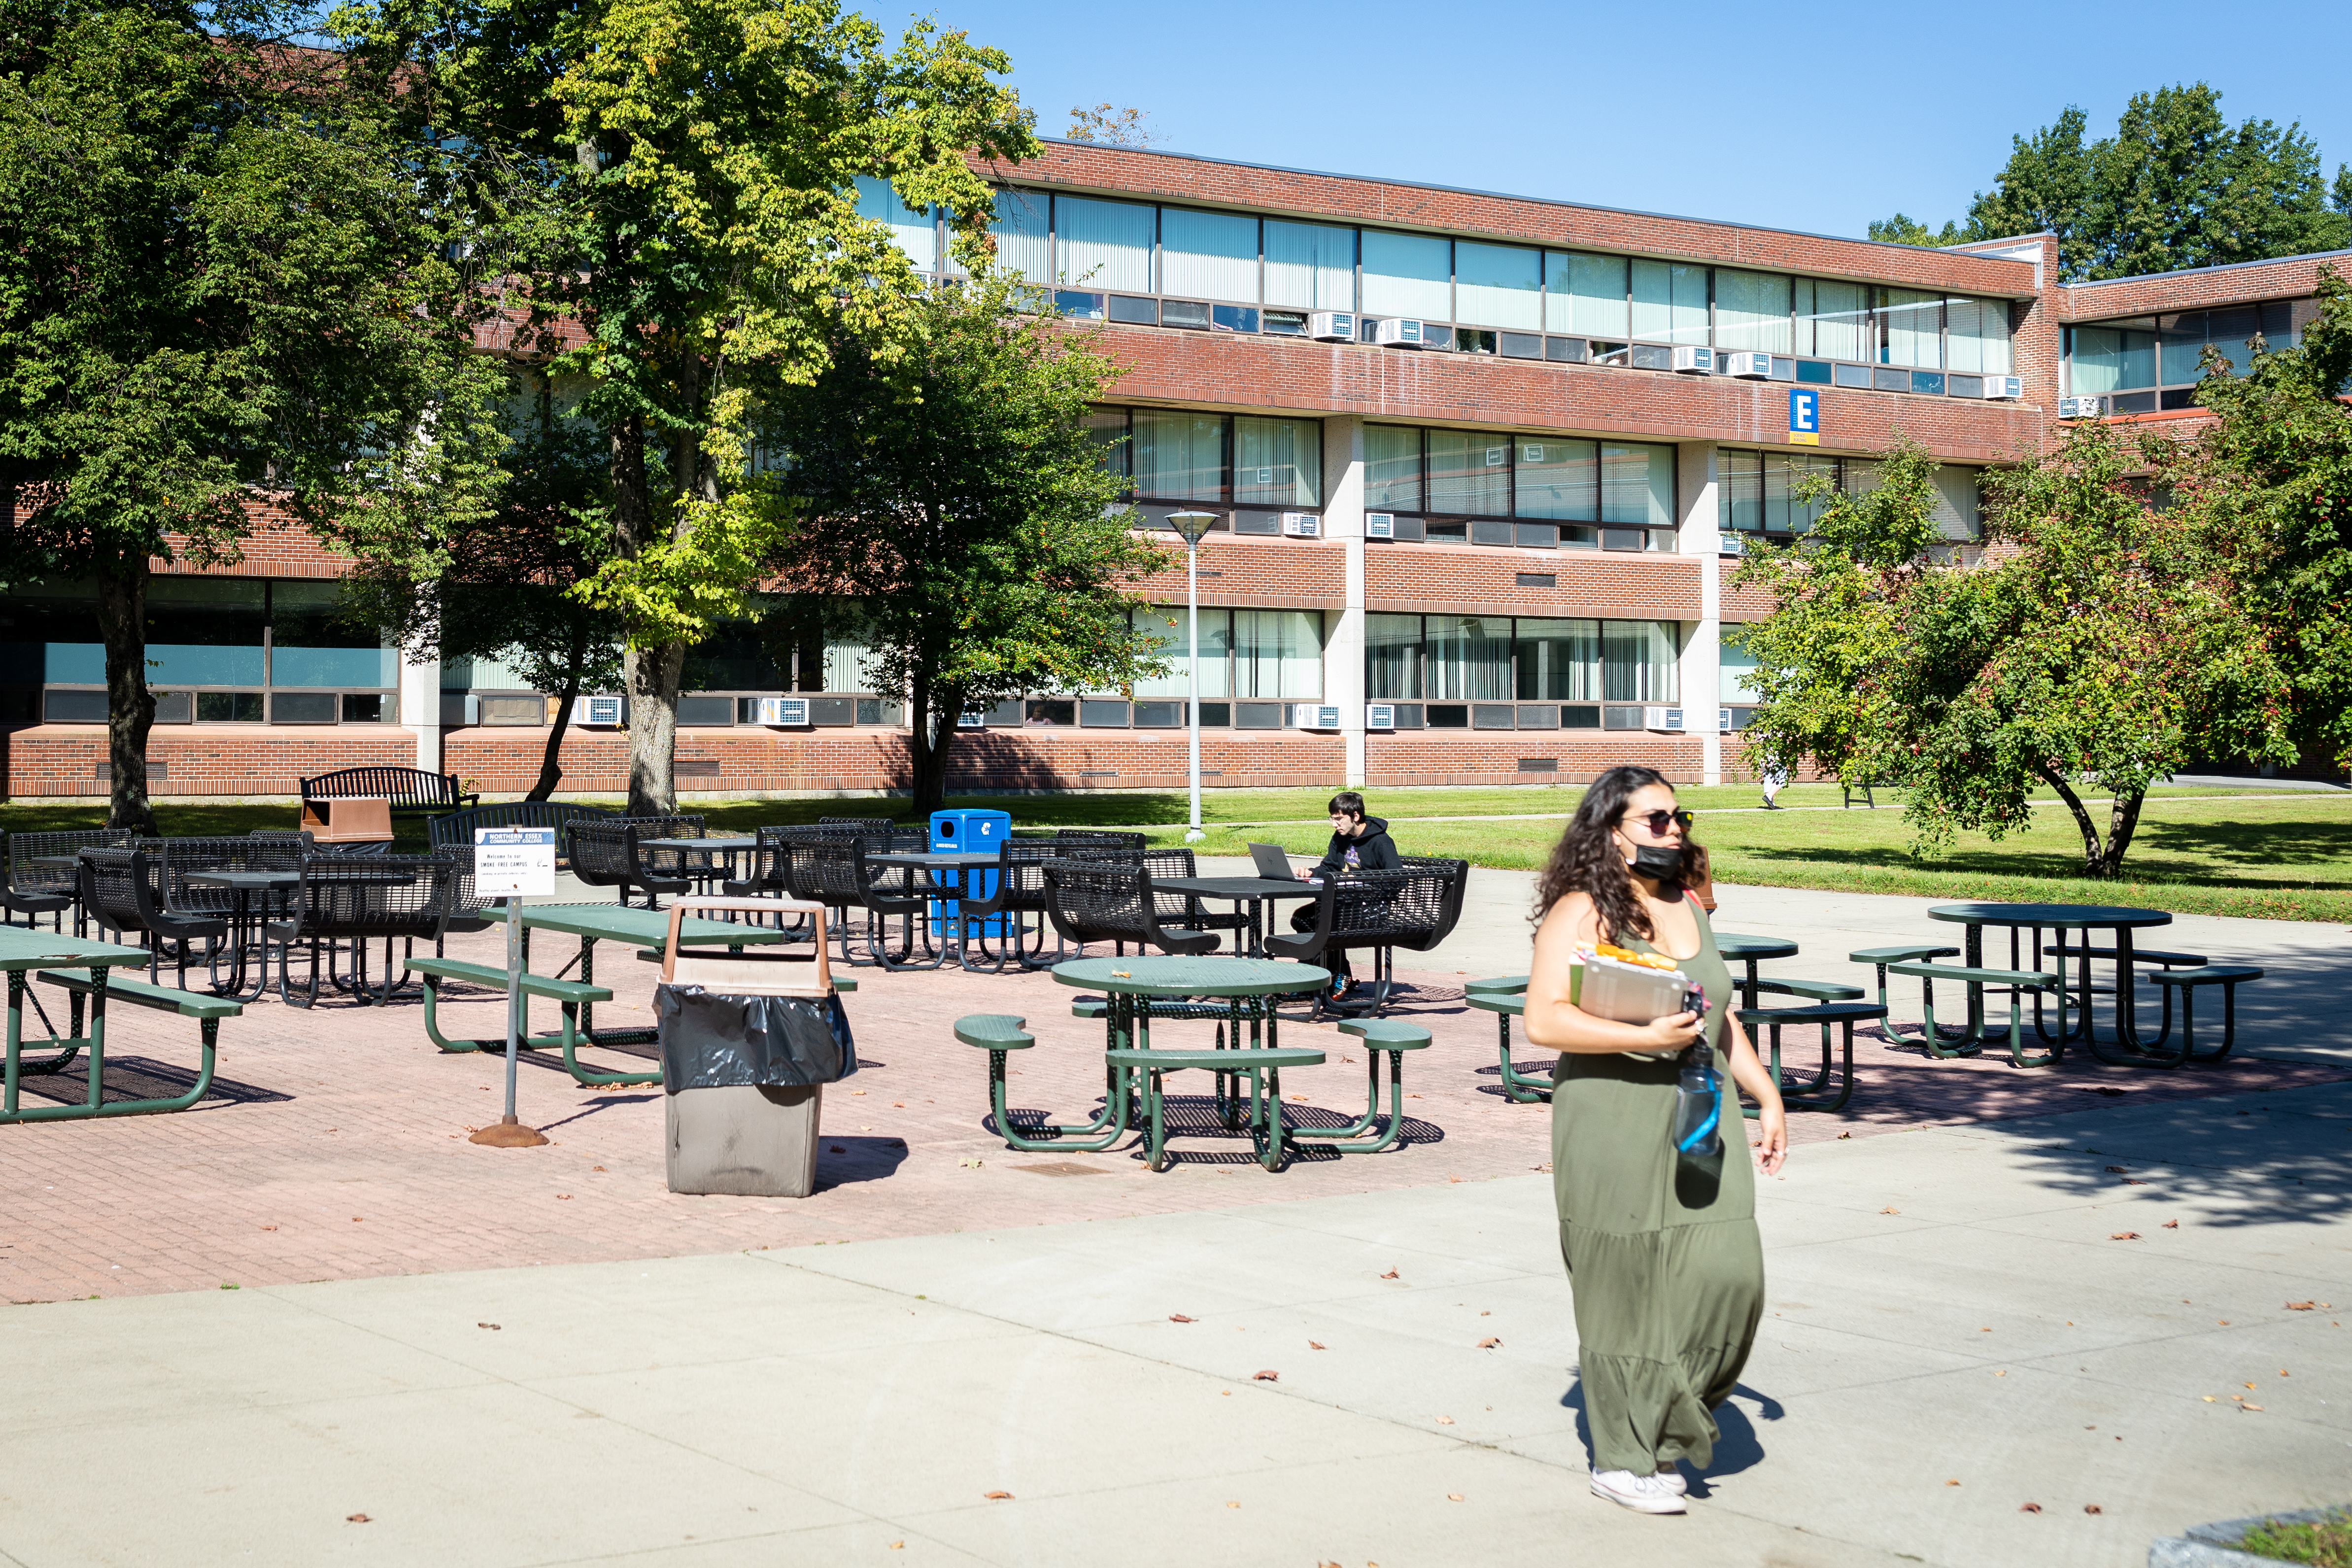 Northern Essex Community College students can work outdoors in several outdoor spaces on the Haverhill campus.